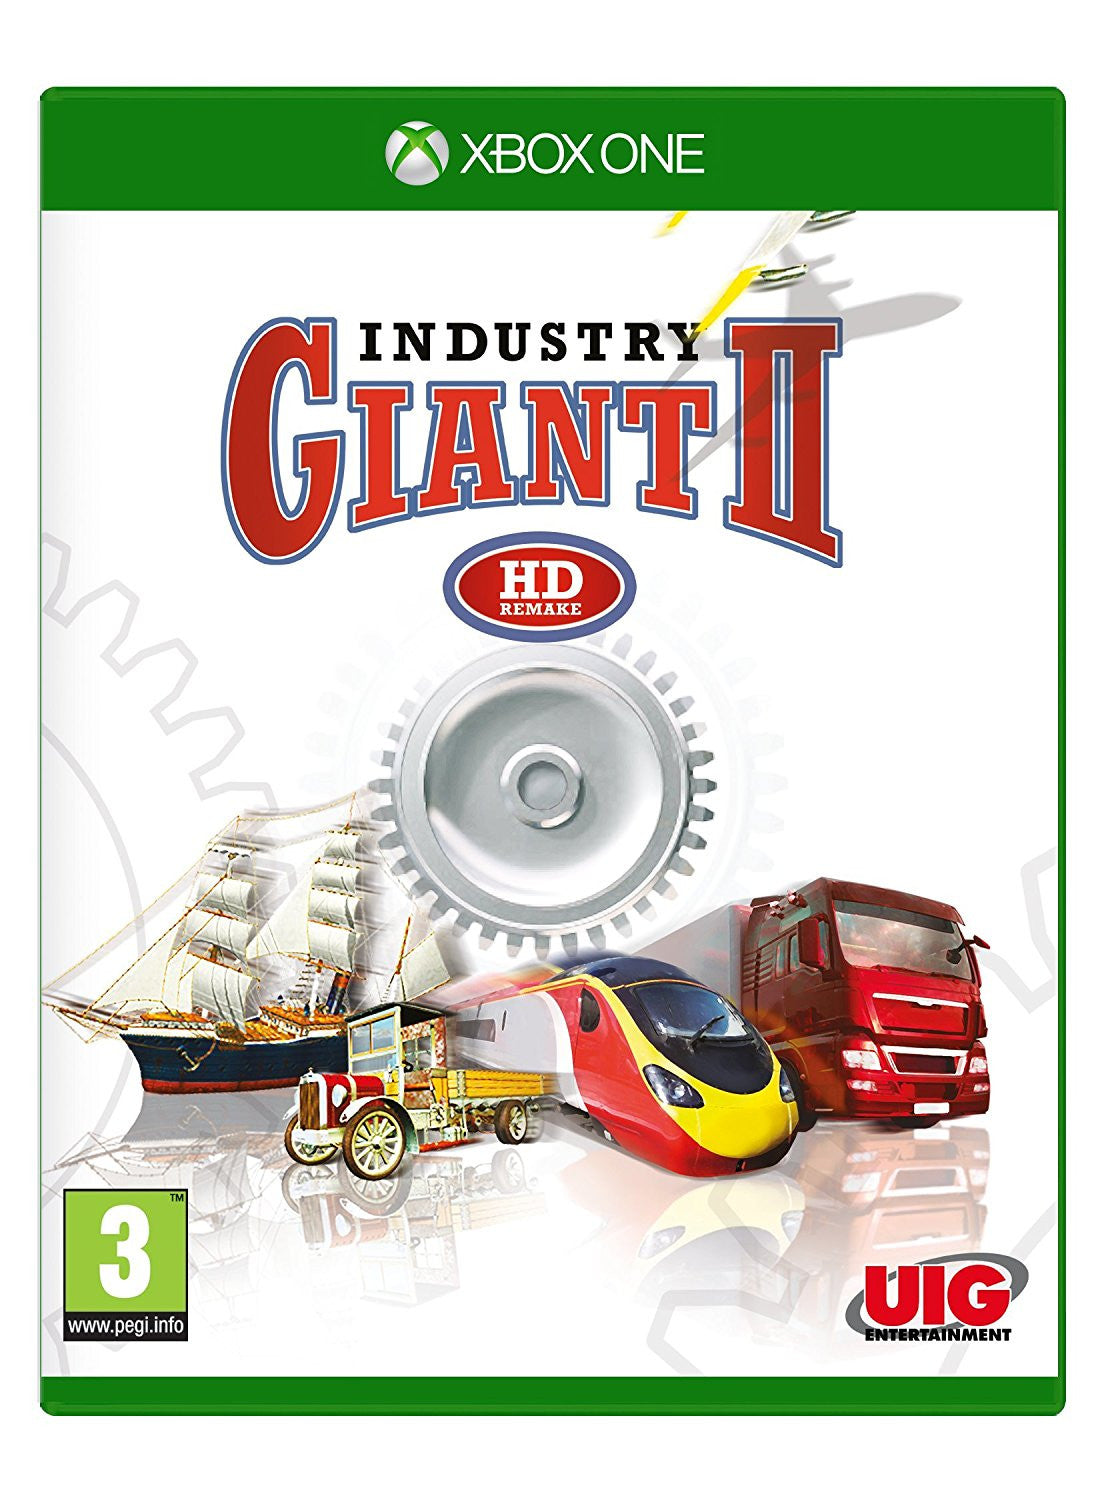 Industry Giant 2 HD Remake (Xbox One)